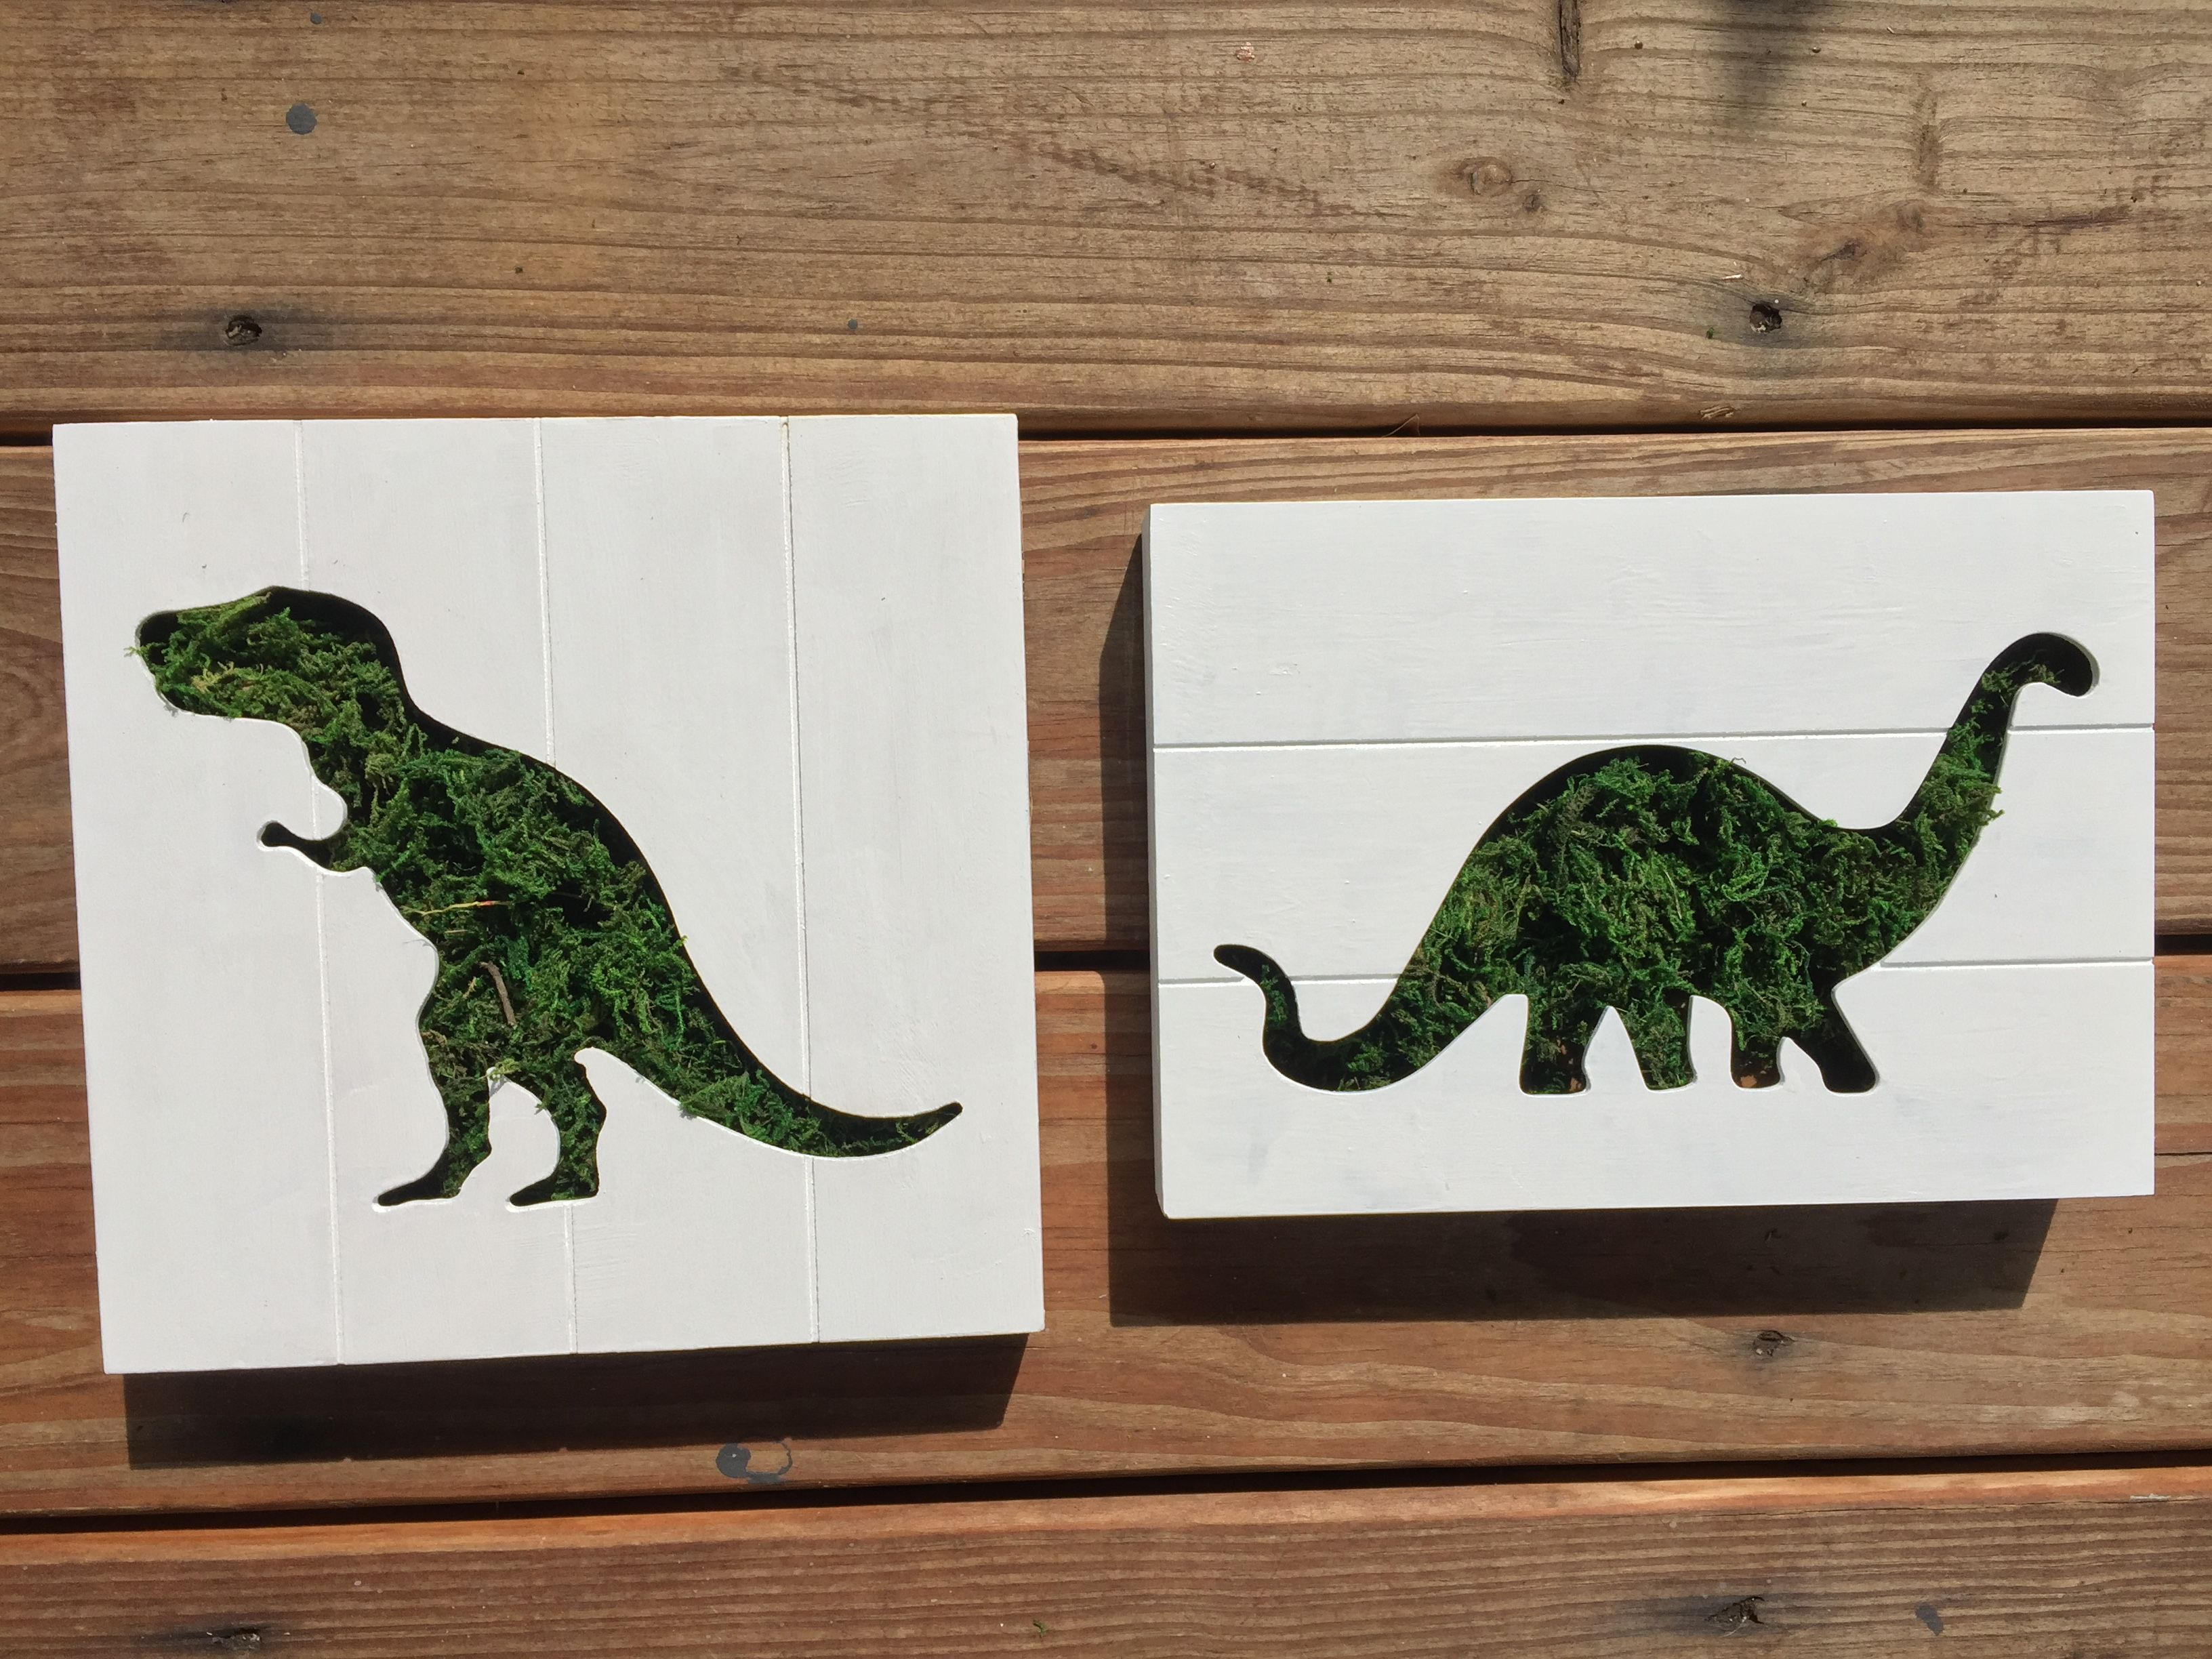 DIY topiary dinosaur shadow boxes from Target dollar spot finds ...